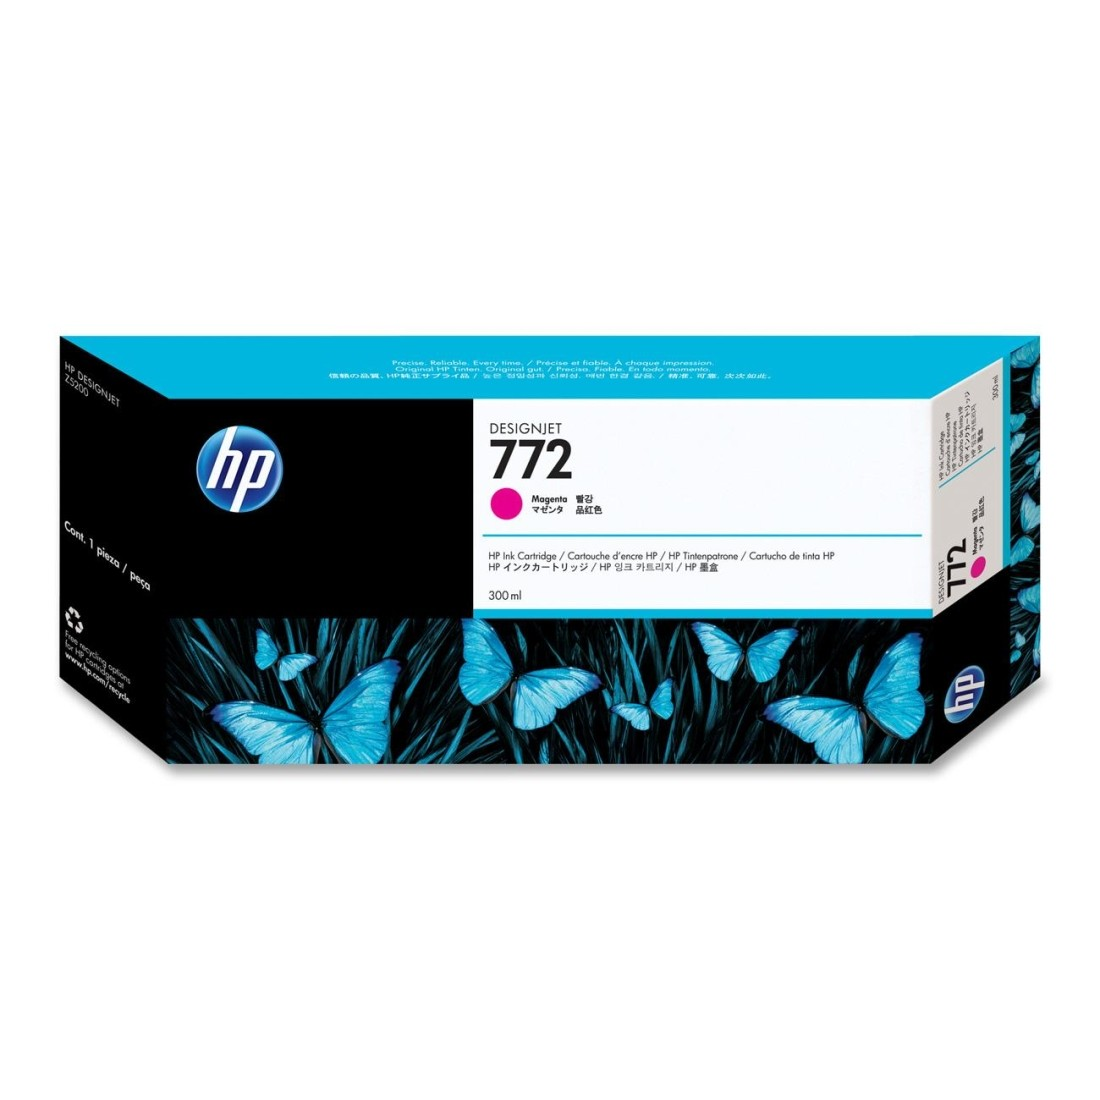 Cartucho De Tinta  Hp 772 Color Magenta De 300 ml